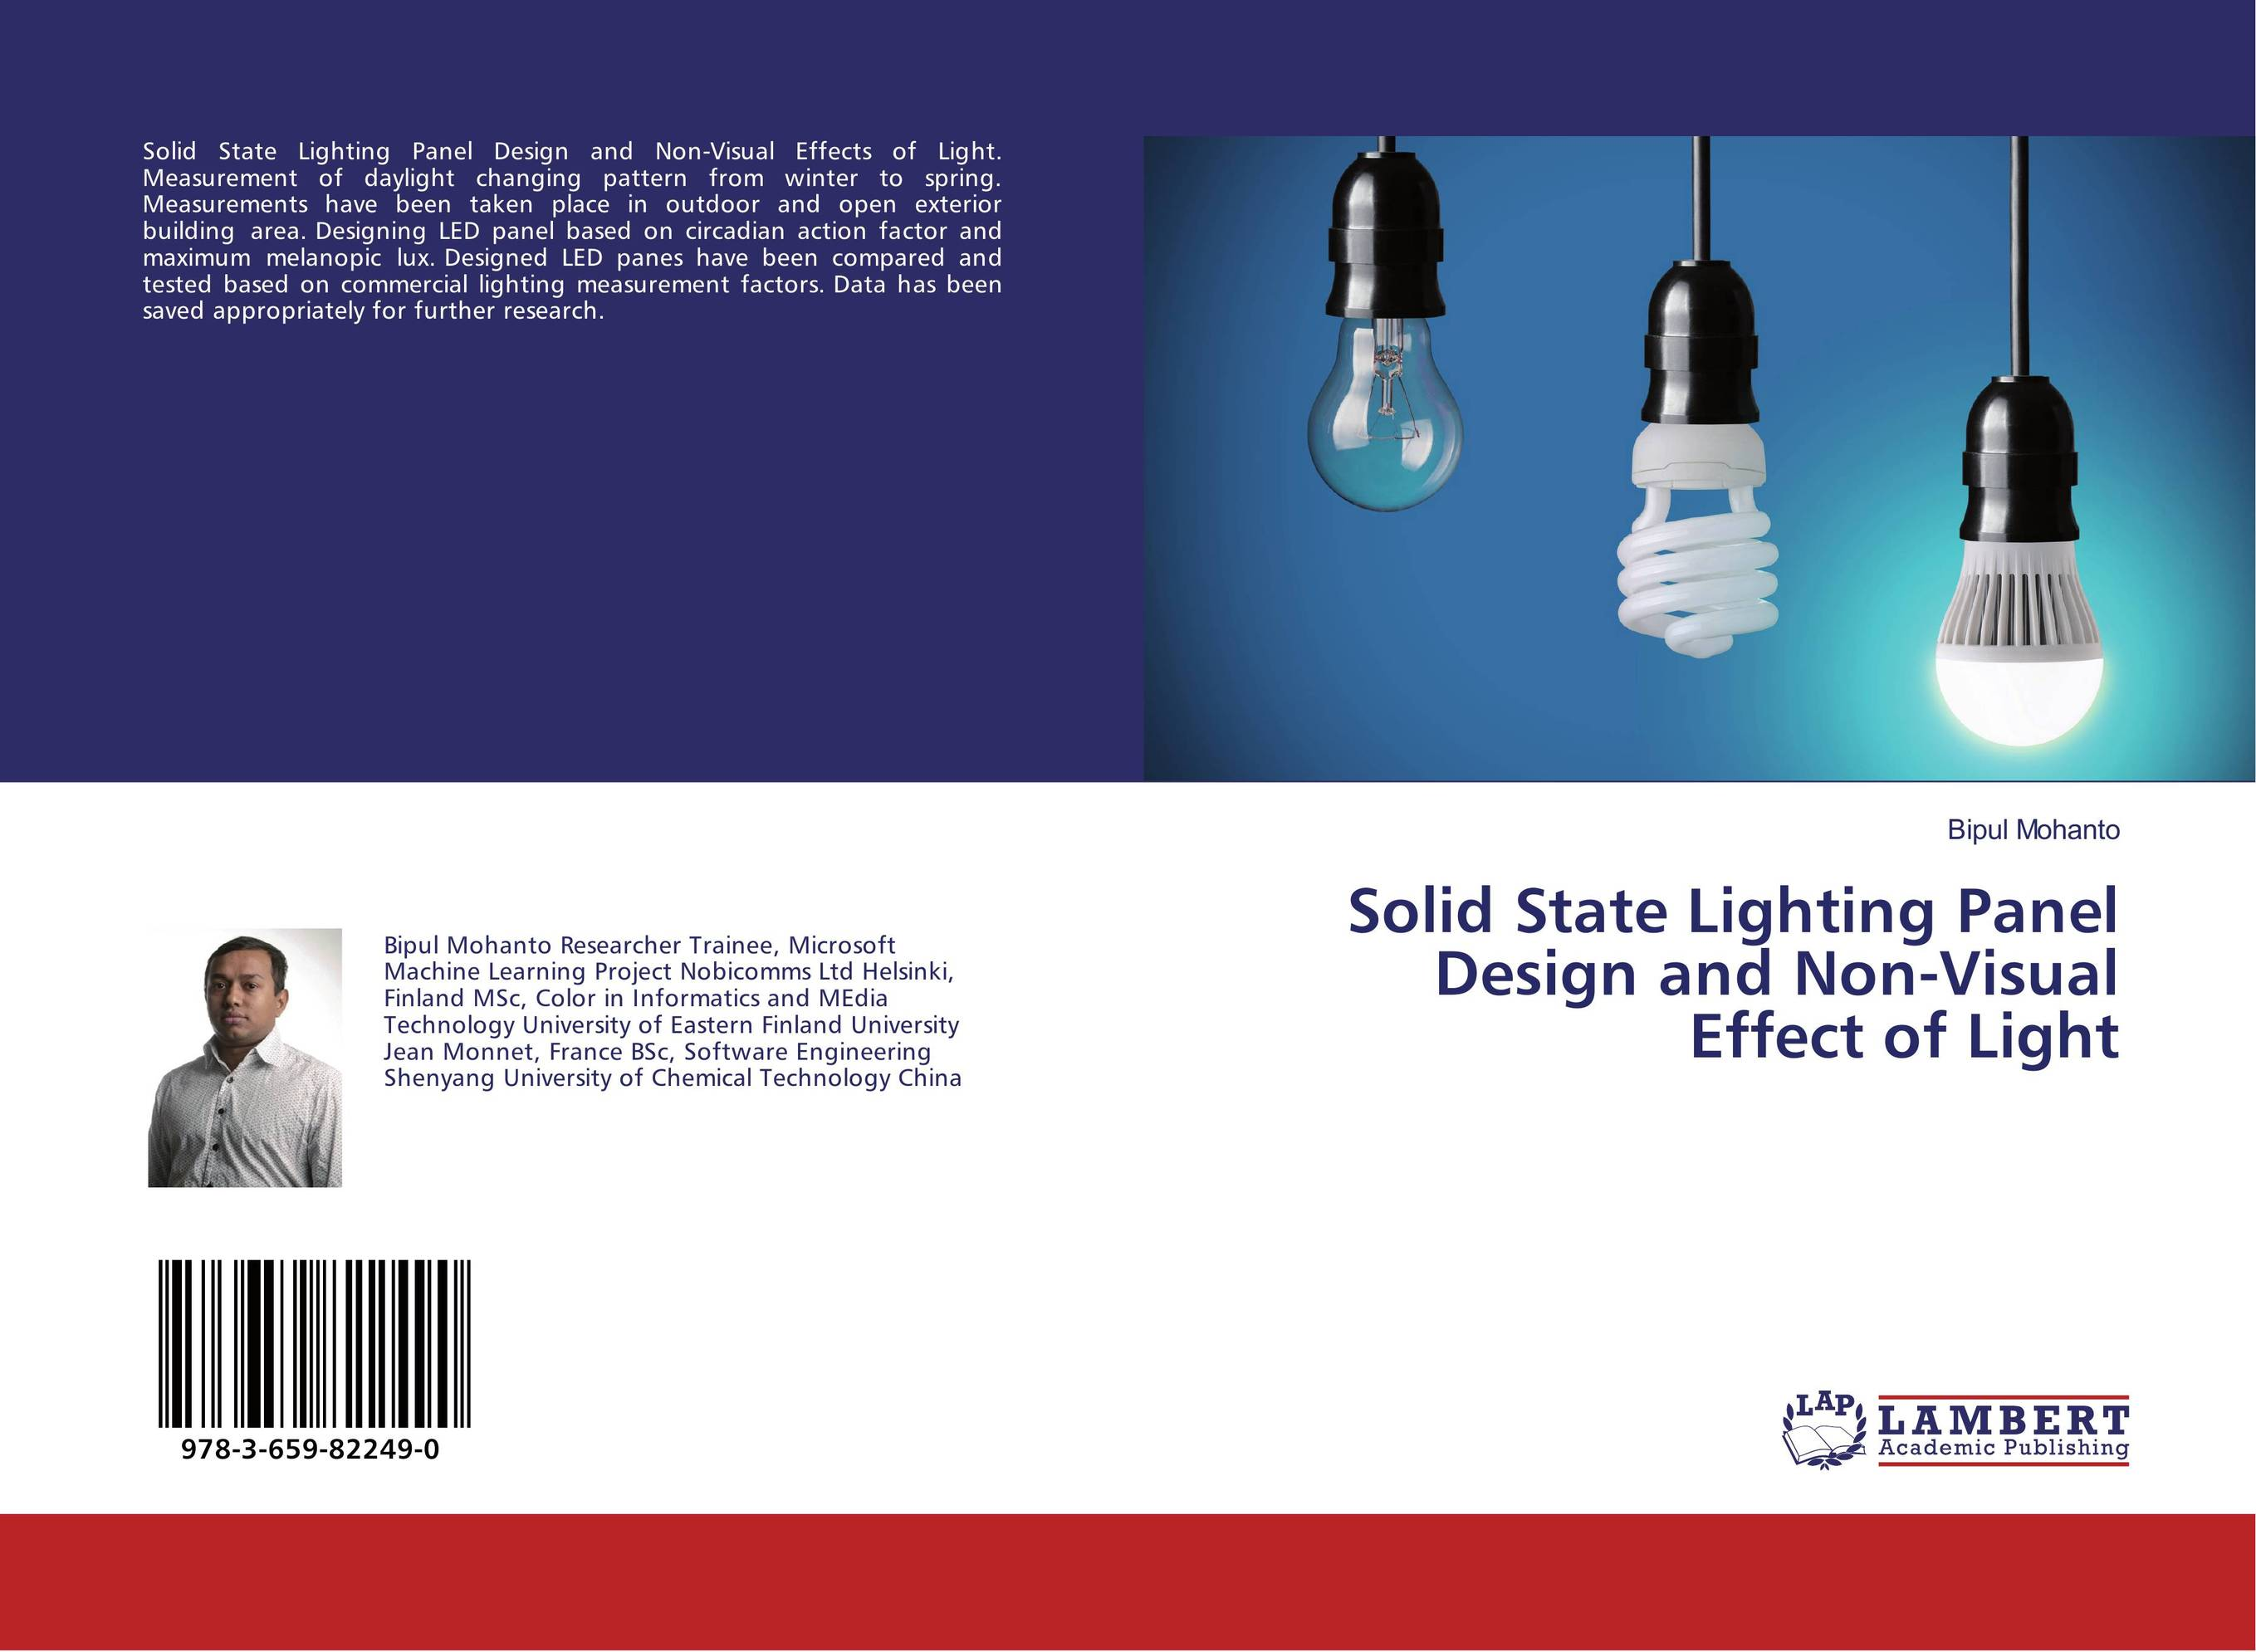 Solid State Lighting Panel Design and Non-Visual Effect of Light dimensions of state building